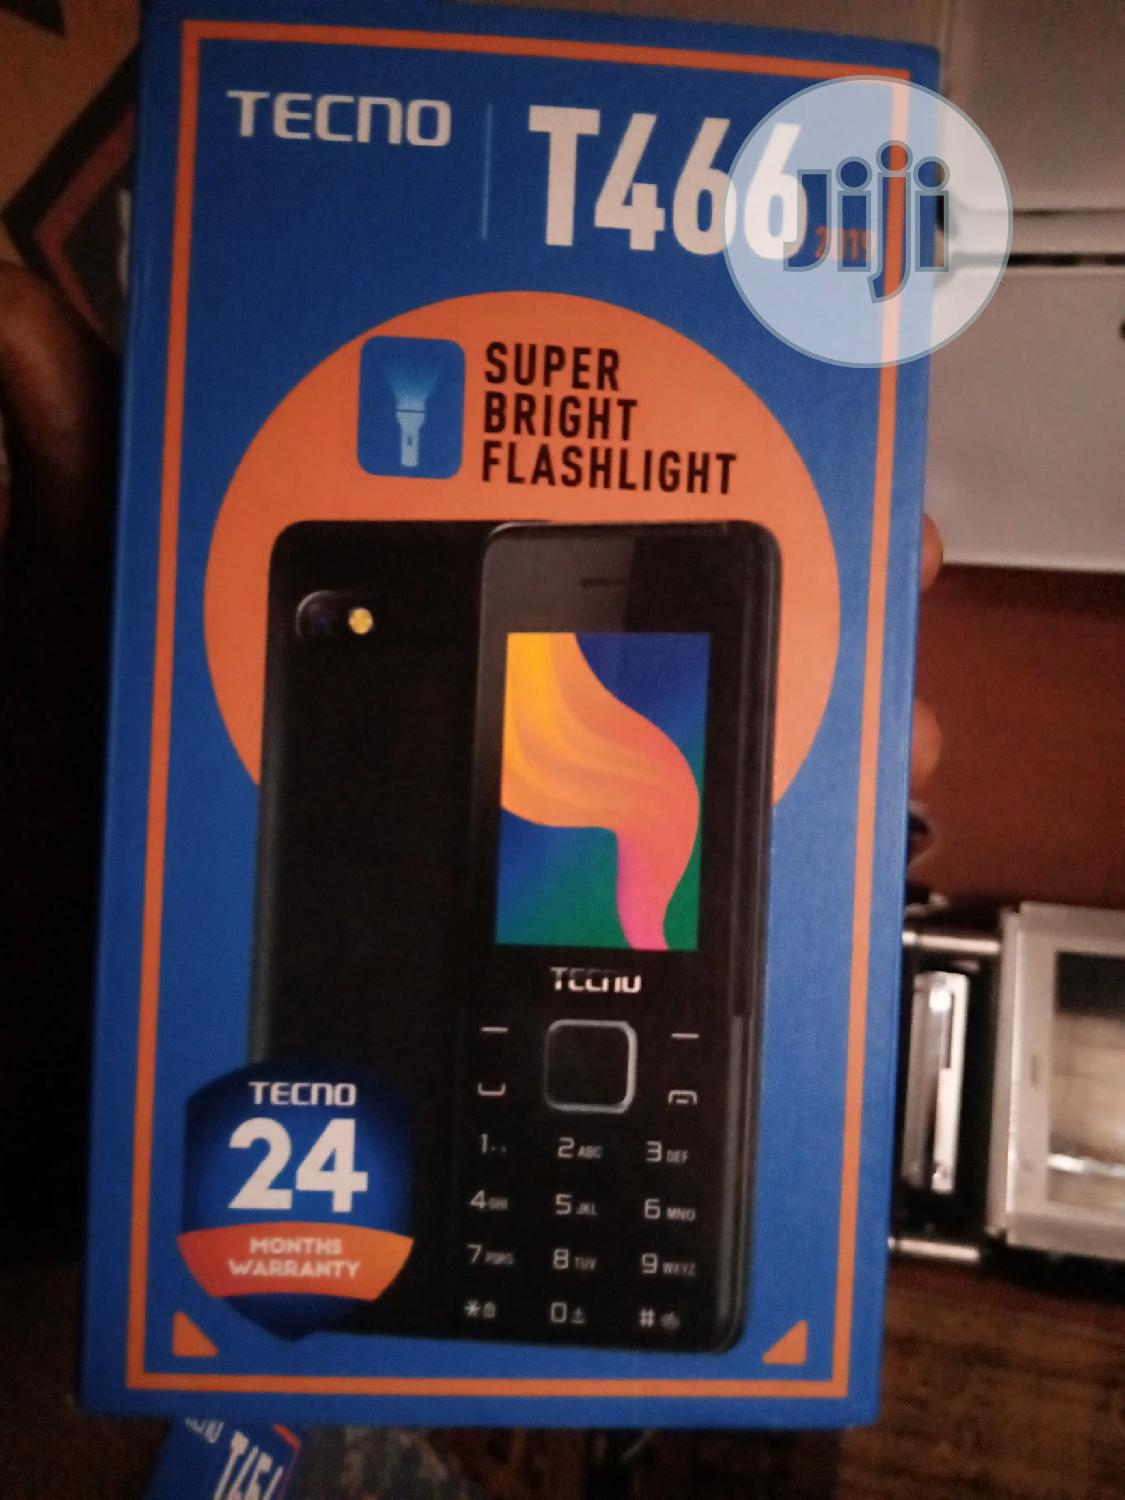 New Tecno T466 Blue | Mobile Phones for sale in Ikotun/Igando, Lagos State, Nigeria